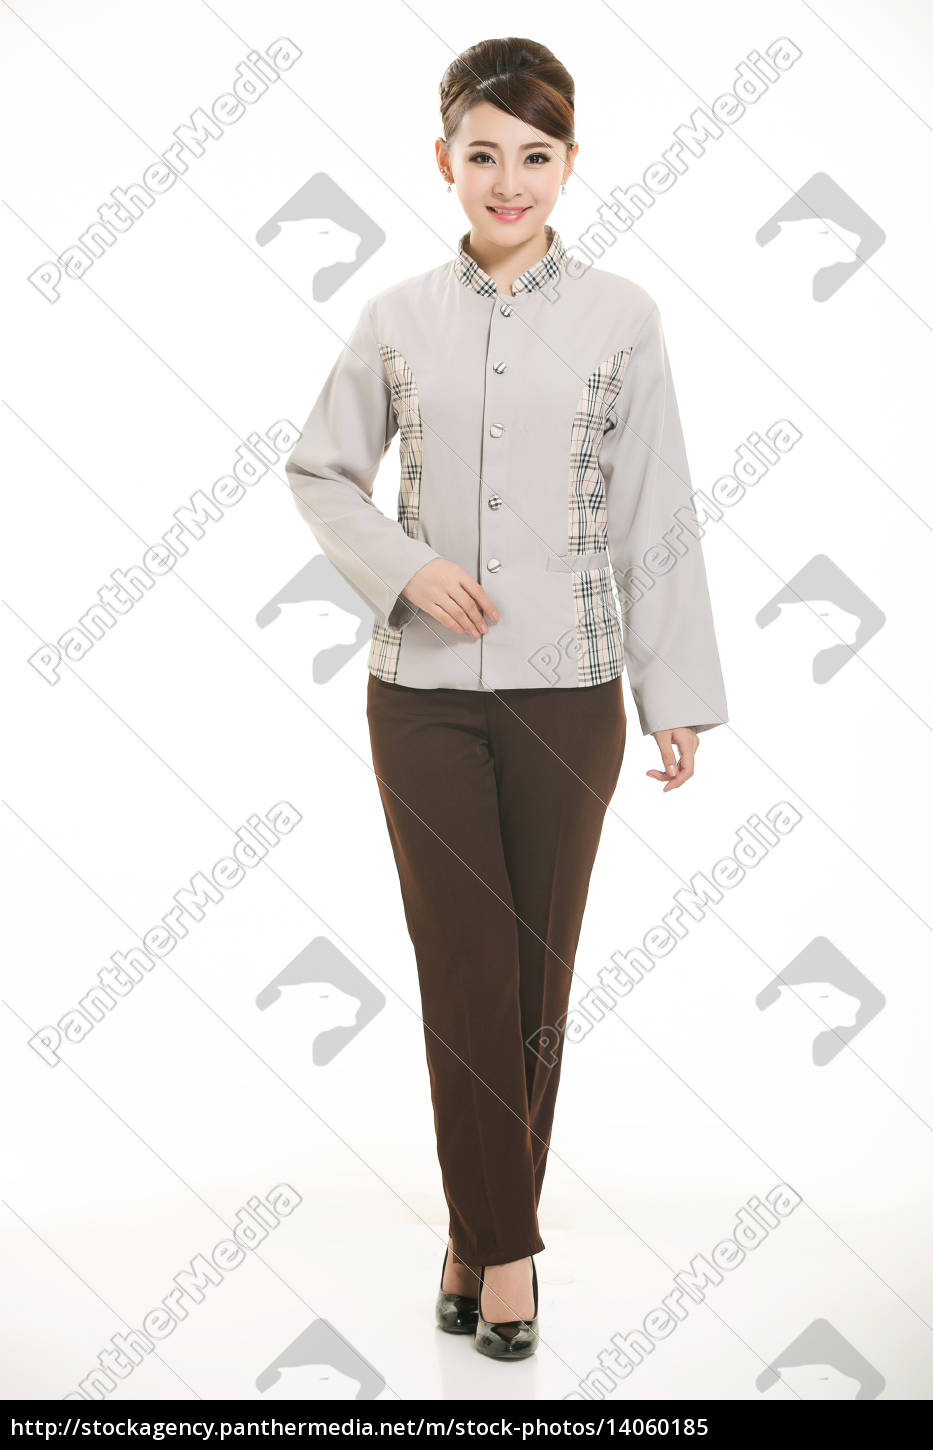 in, a, variety, of, occupation, clothing - 14060185